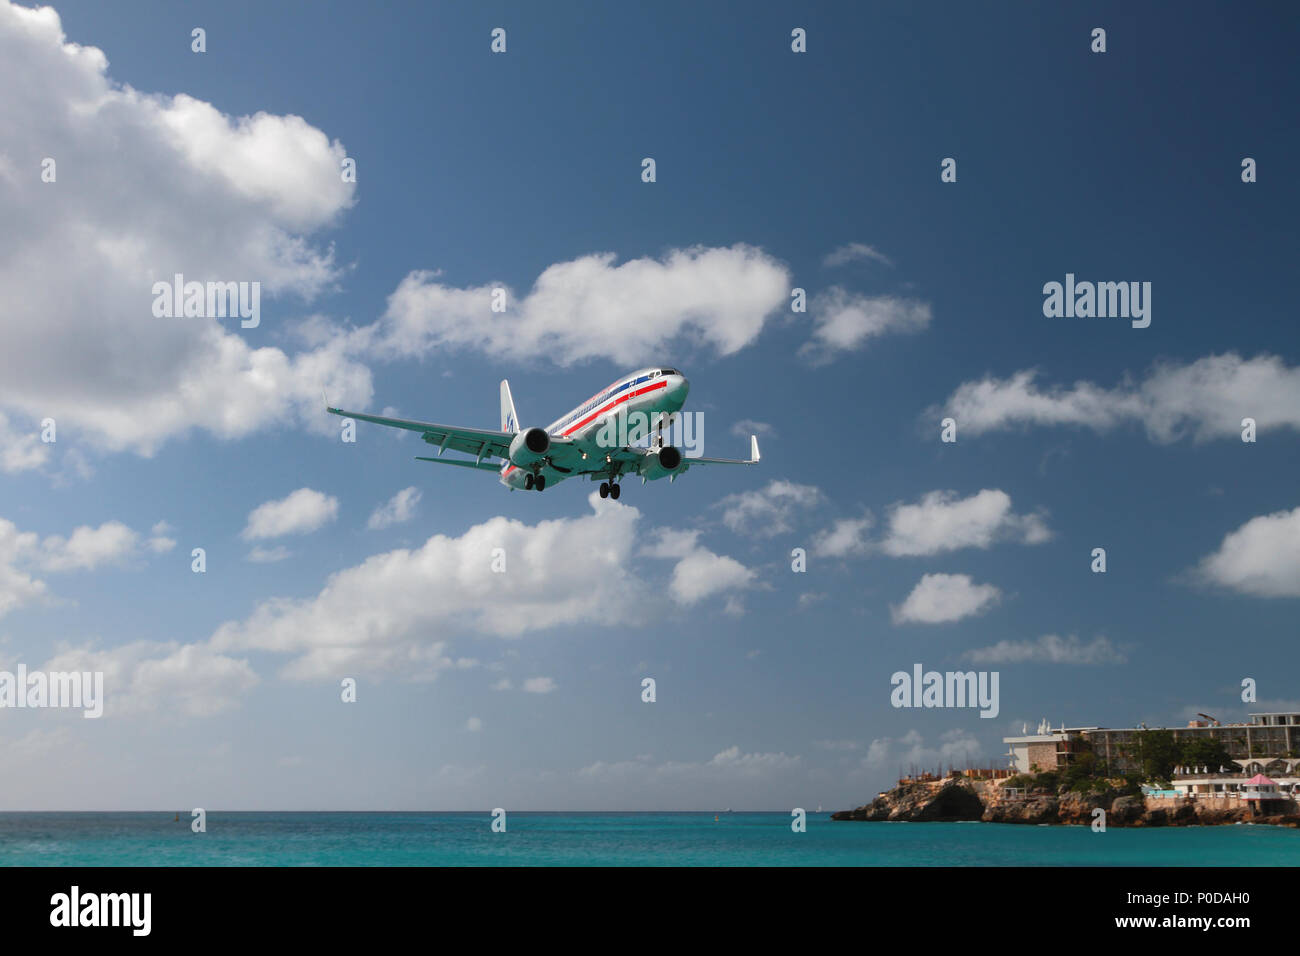 Philipsburg, Saint-Martin - Jan 05, 2015: Passenger airliner carries out landing to tropical island - Stock Image